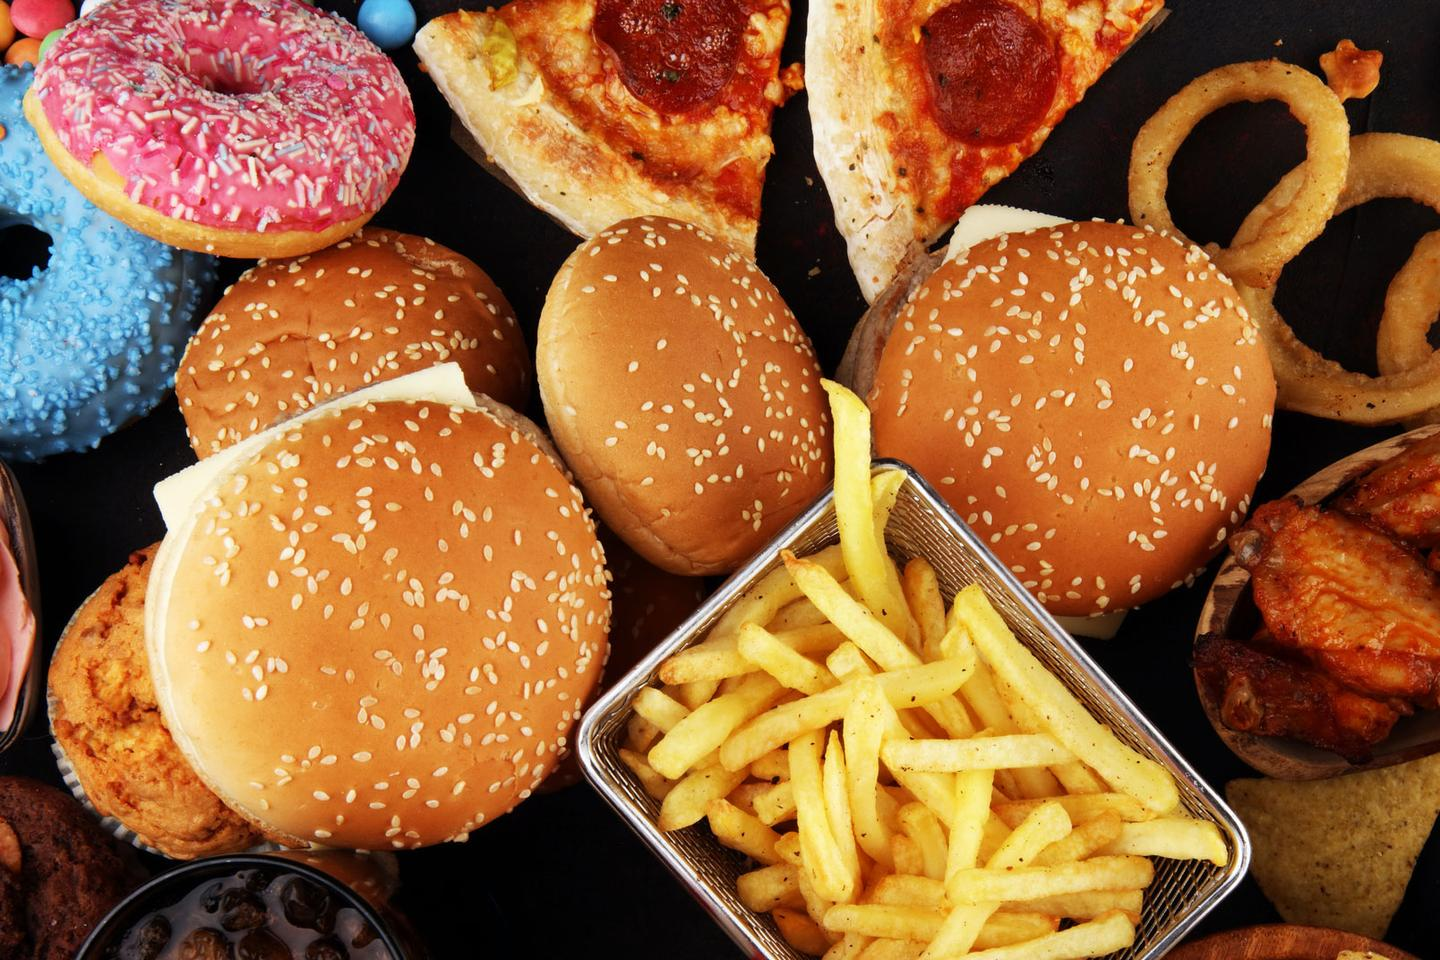 New research shows how trans fats contribute to cell death, contributing to all kinds of disease